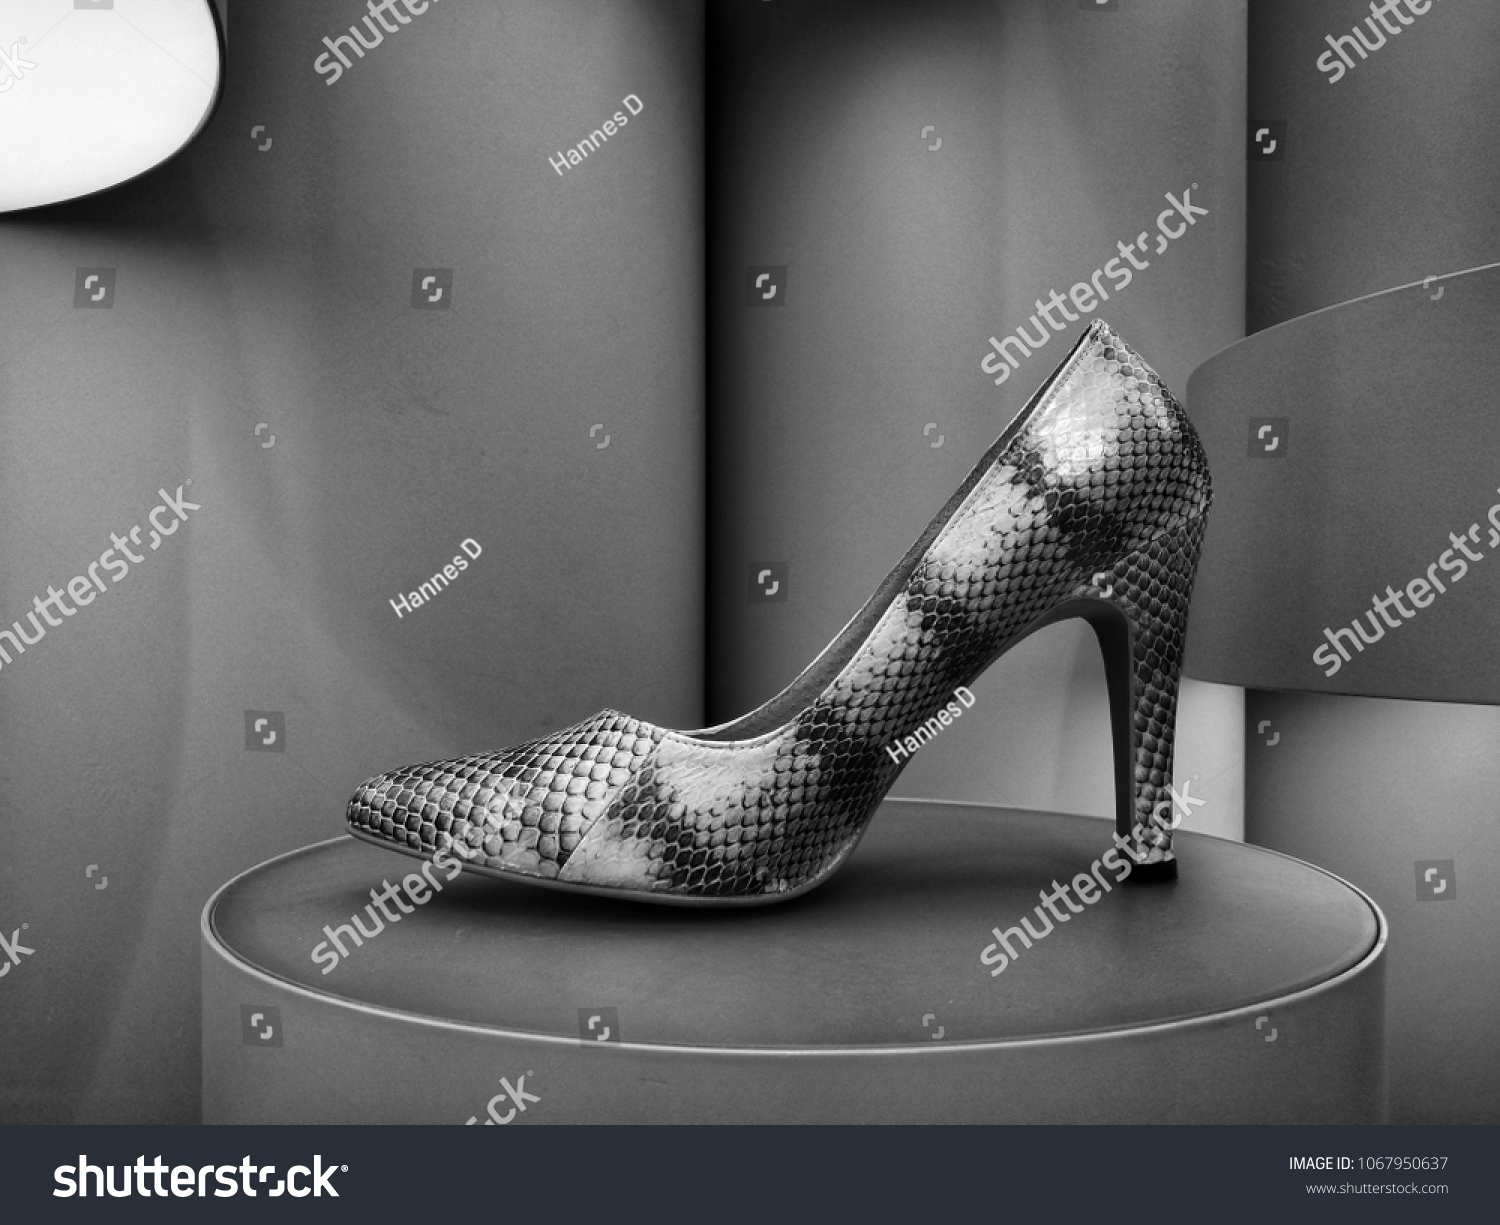 Black and white picture of classy snake skin high heel shoe on display